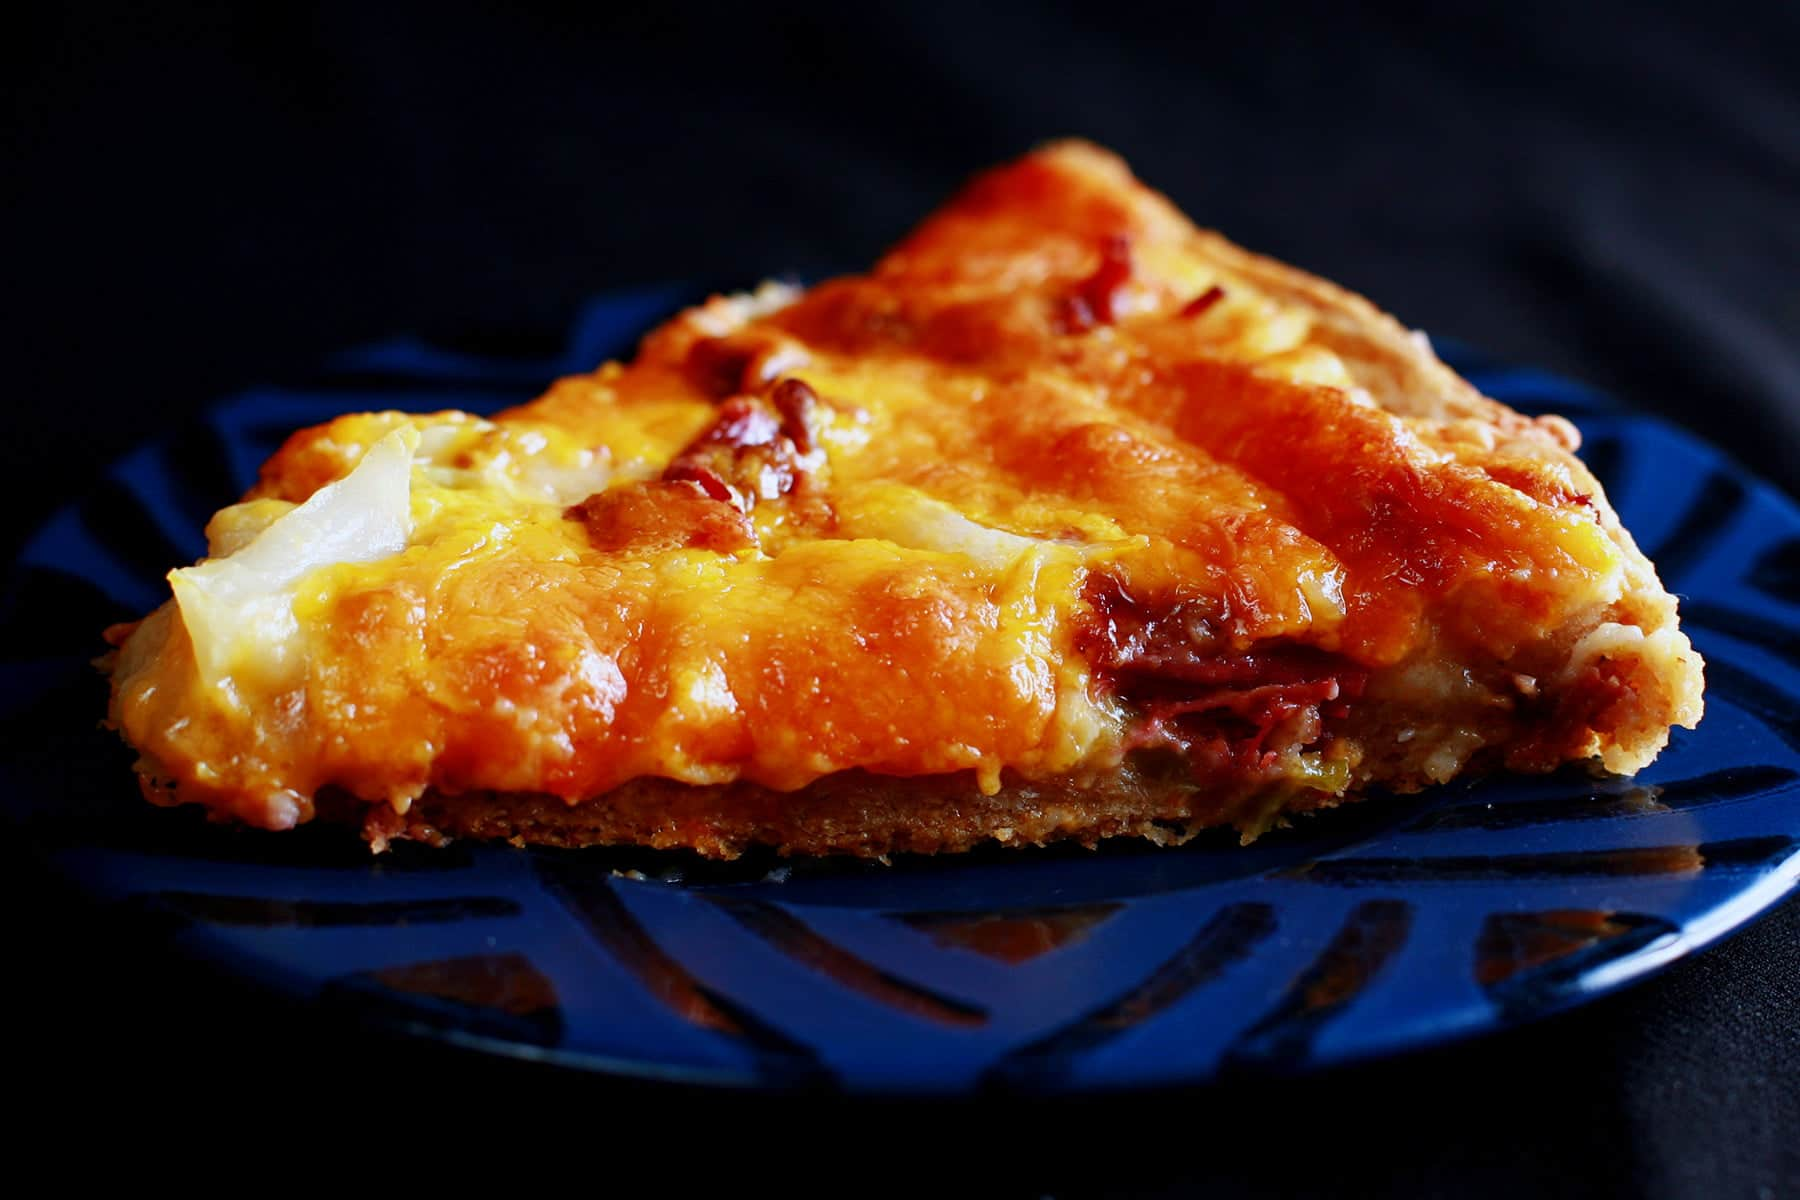 A slice of St Patrick's Day Pizza on a blue plate. Chunks of cabbage and corned beef are visible from under the cheese.